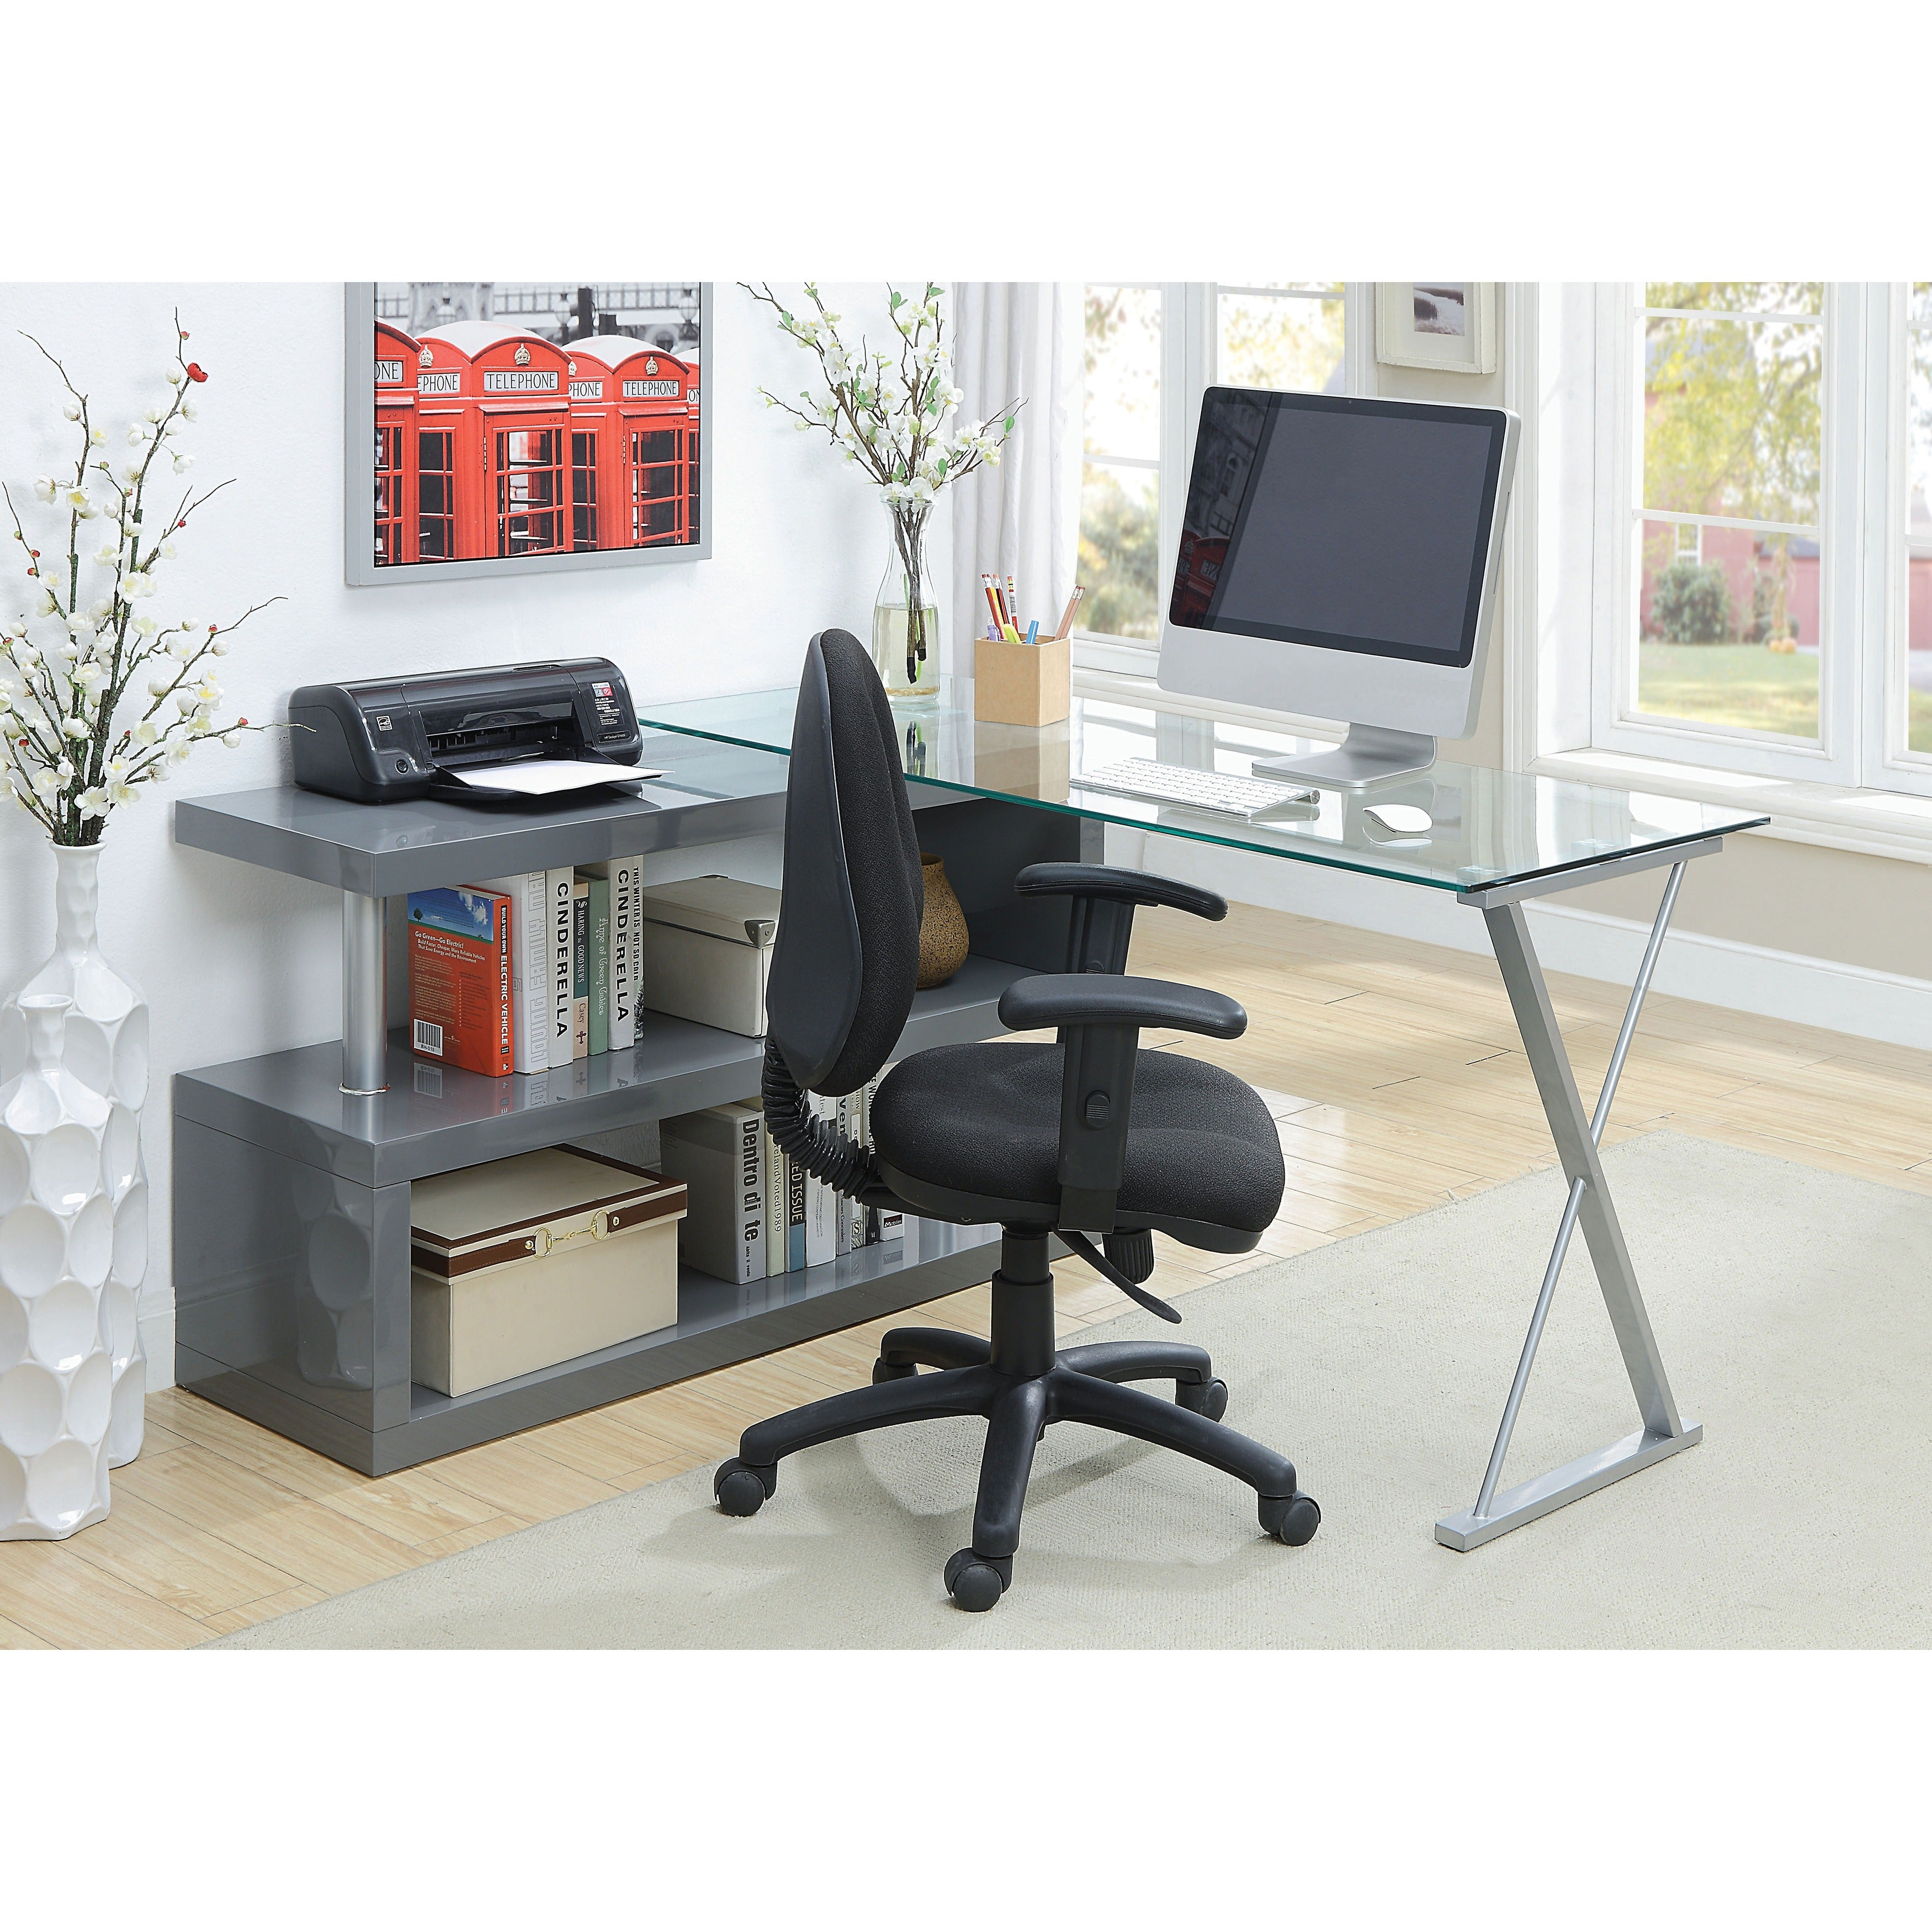 Exceptionnel Shop Oliver U0026 James Mense Convertible Executive Desk   On Sale   Free  Shipping Today   Overstock.com   21426654